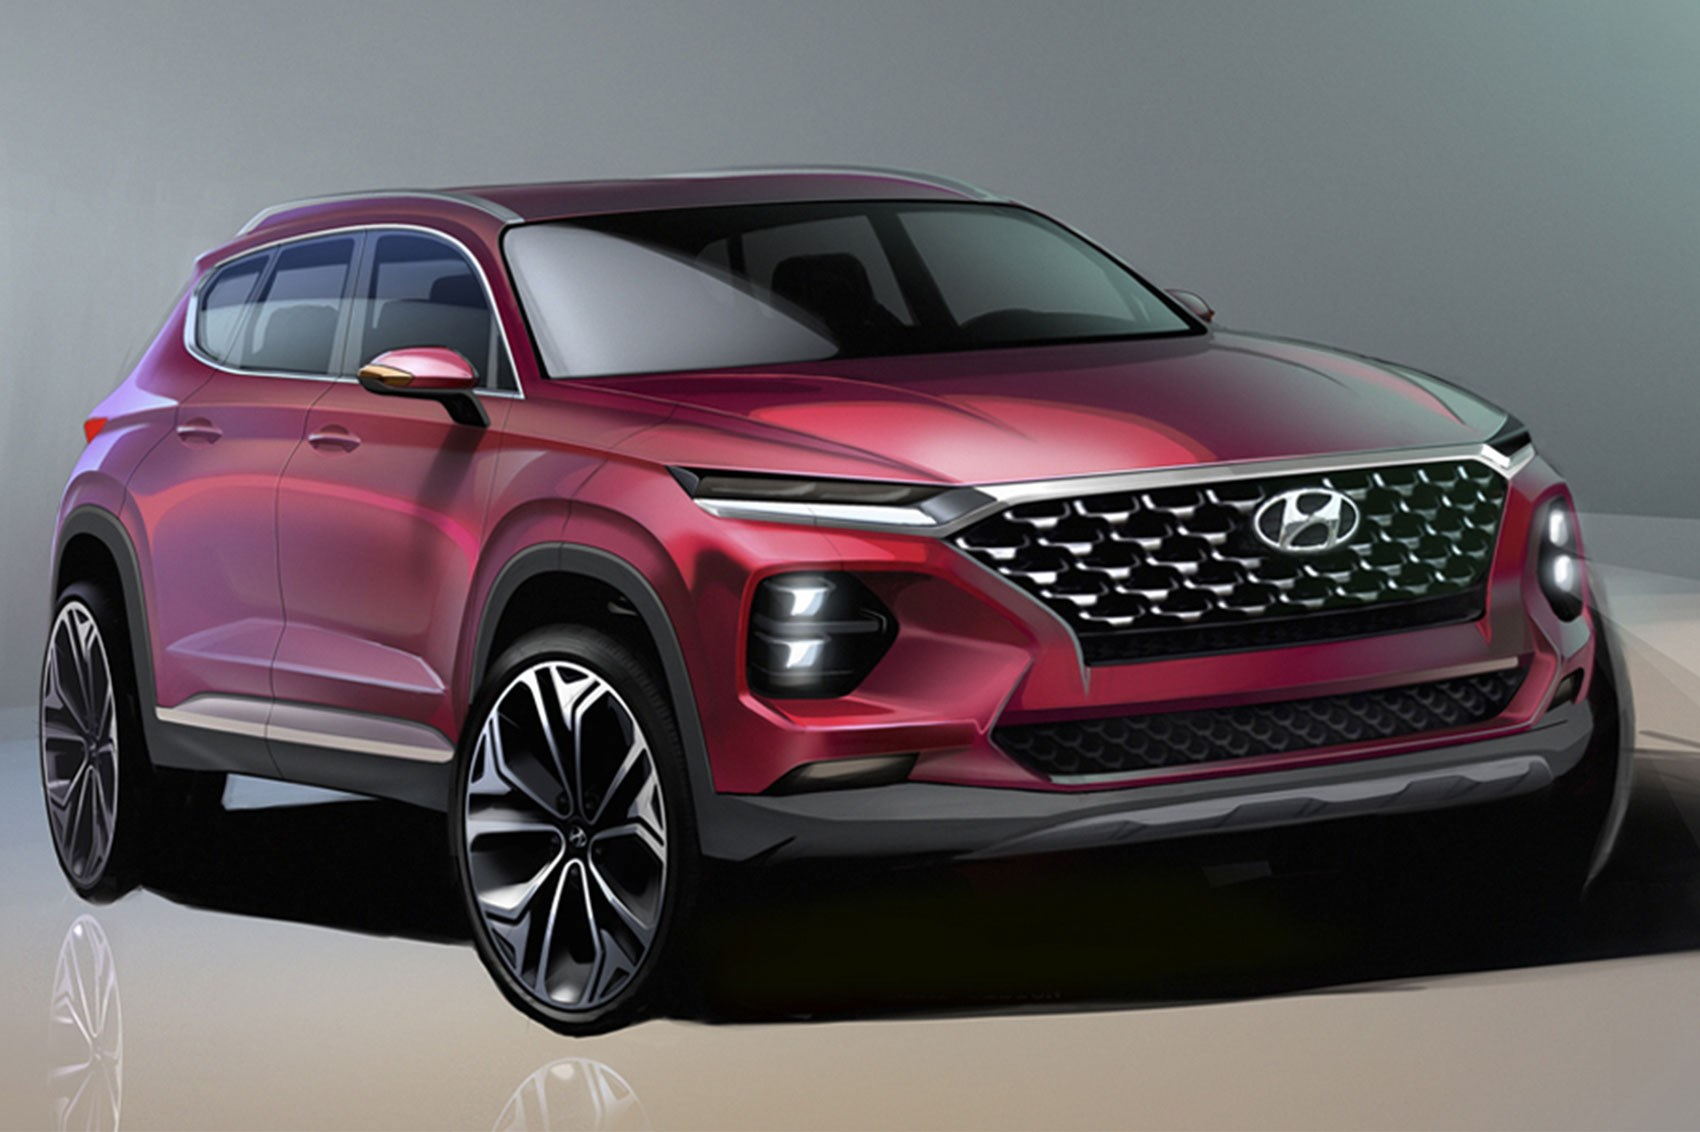 new hyundai santa fe suv everything we know so far car. Black Bedroom Furniture Sets. Home Design Ideas